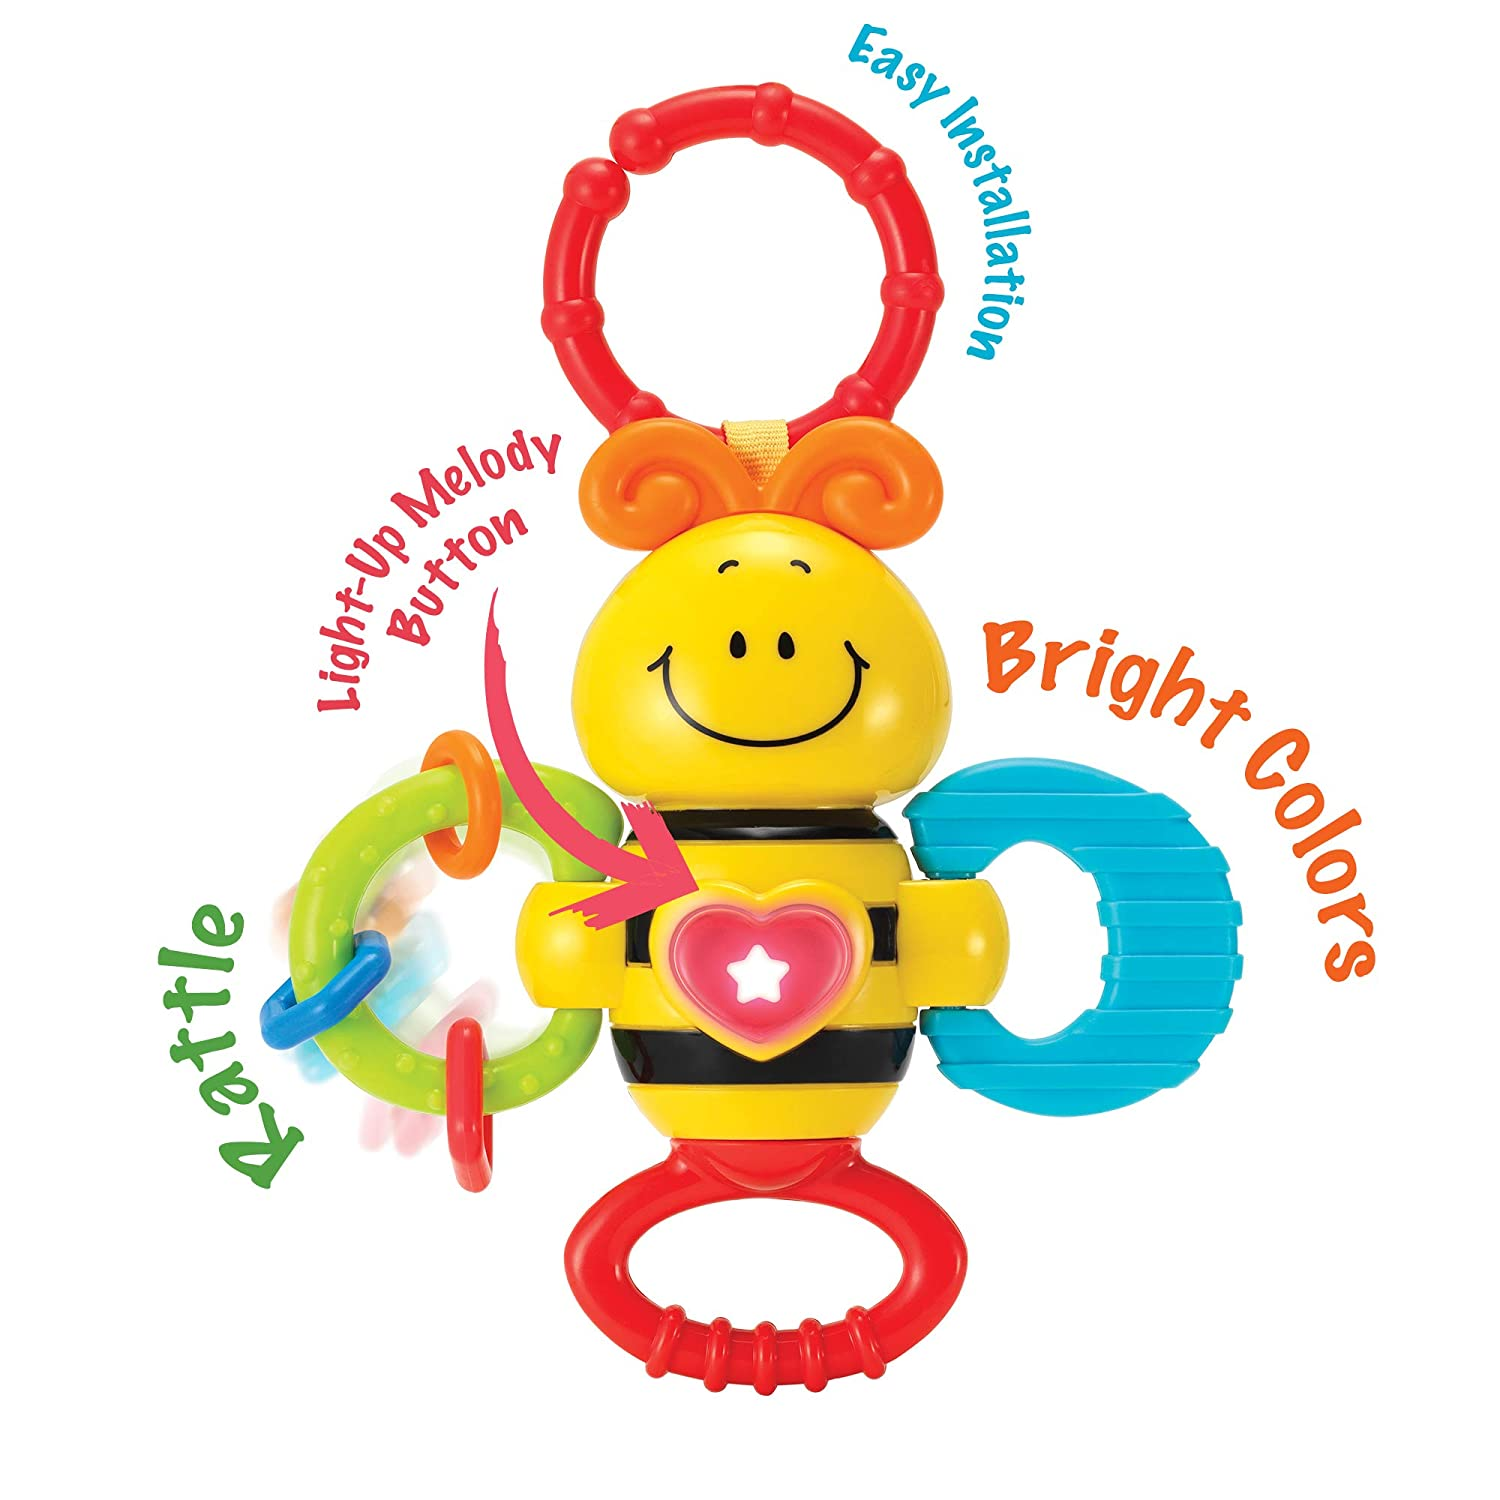 KiddoLab Twist Rattle /& Shake Musical Bee Light-Up Toy and Teething Ring for Toddlers 3 Months Sensory Chew and Fine Motor Skills Toy for Newborn Musical Playtime Baby Teether and Rattle Toy Boxiki .